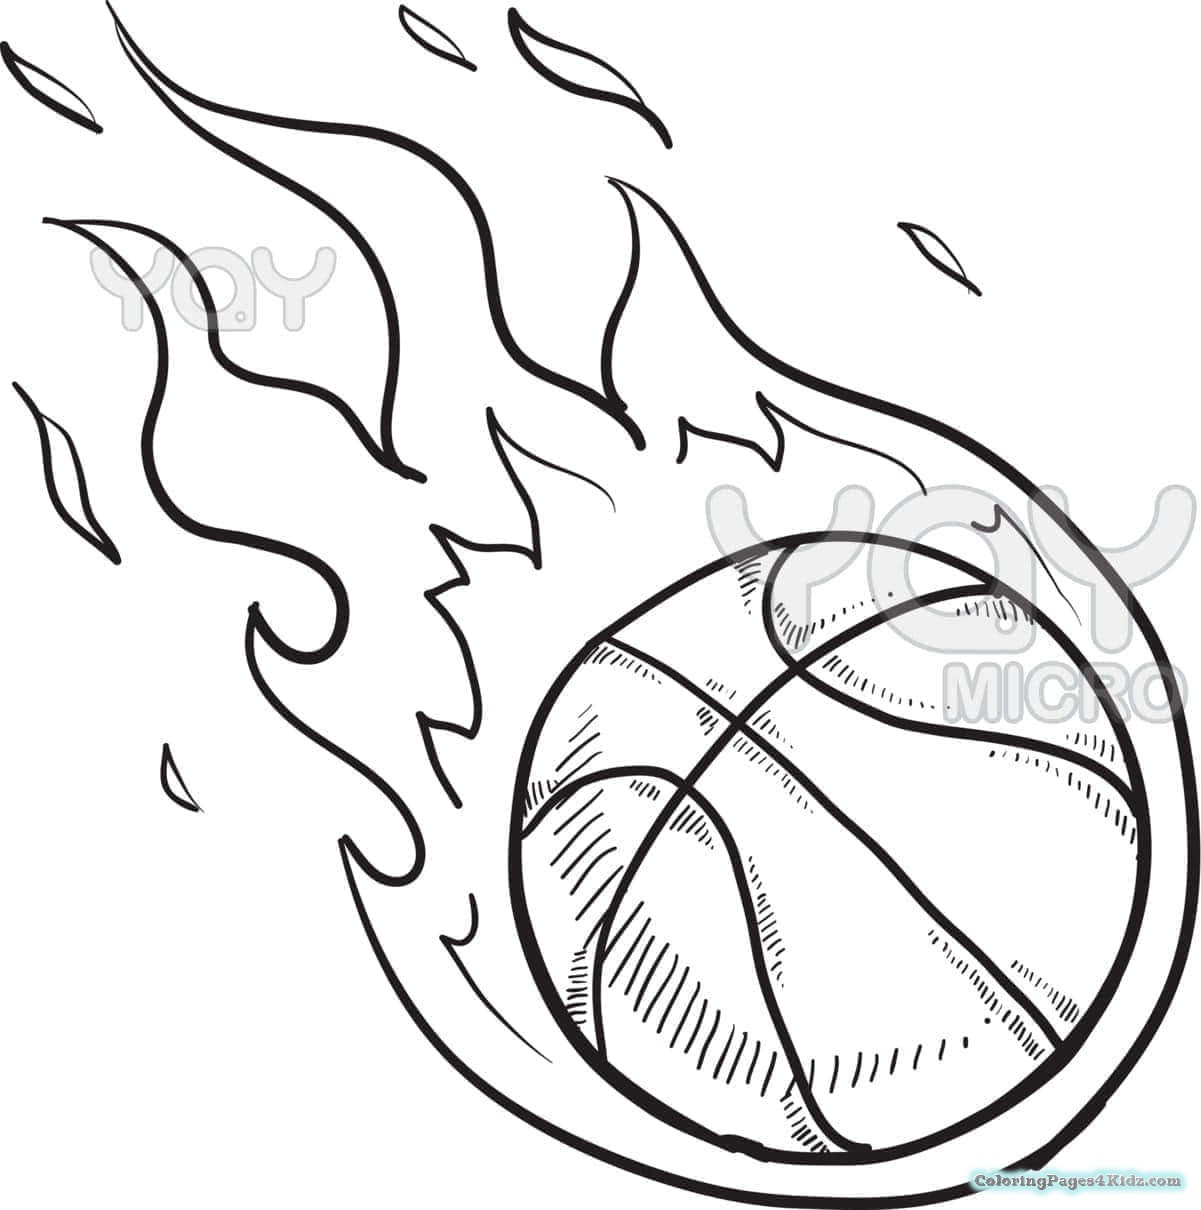 1201x1210 Instructive Basket Ball Coloring Pages Stephen Curry Basketball